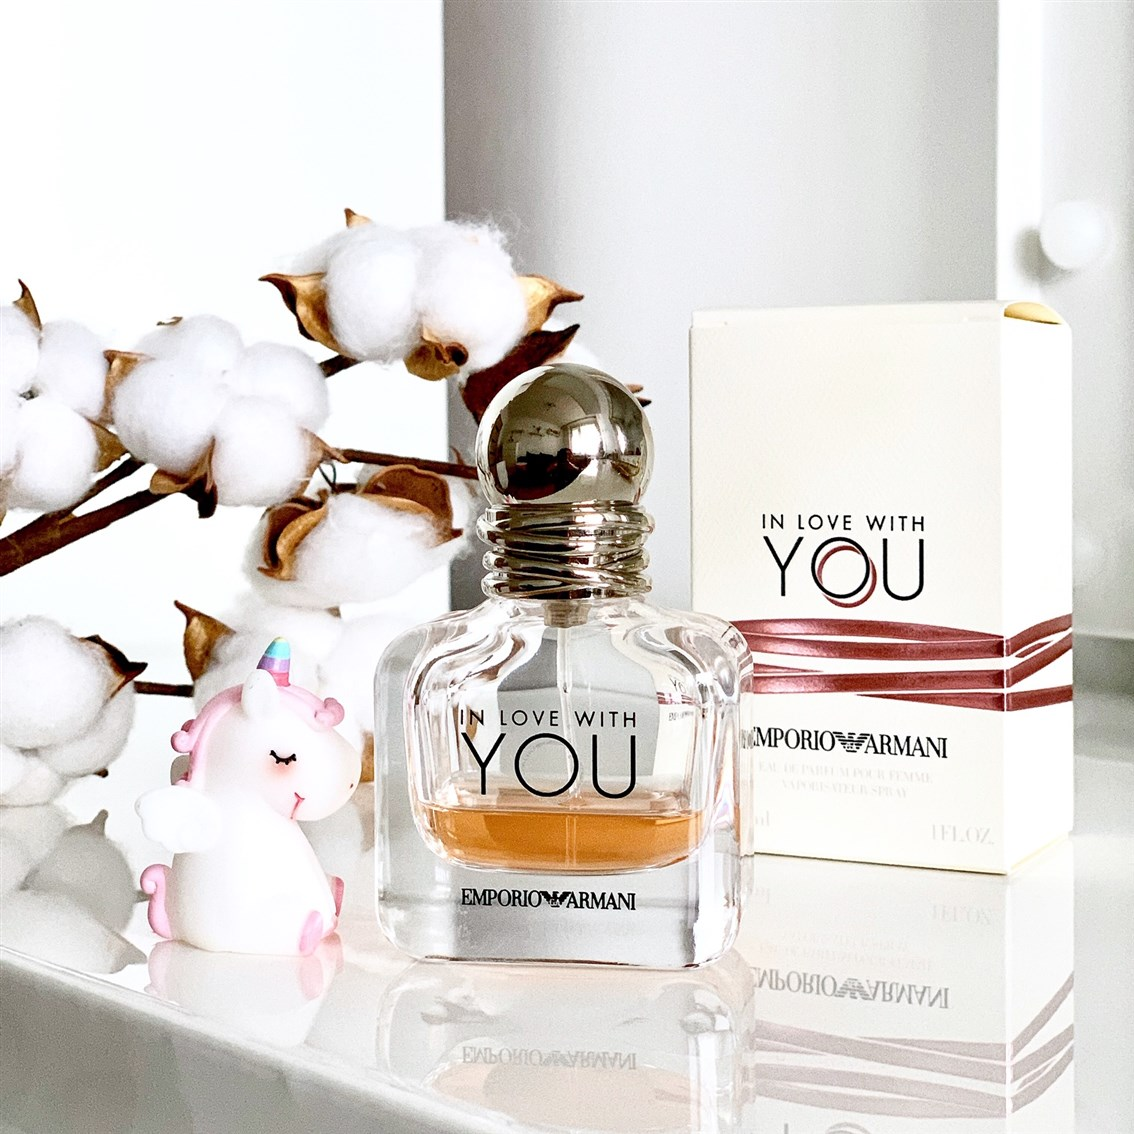 Emporio Armani In Love With You recenzja